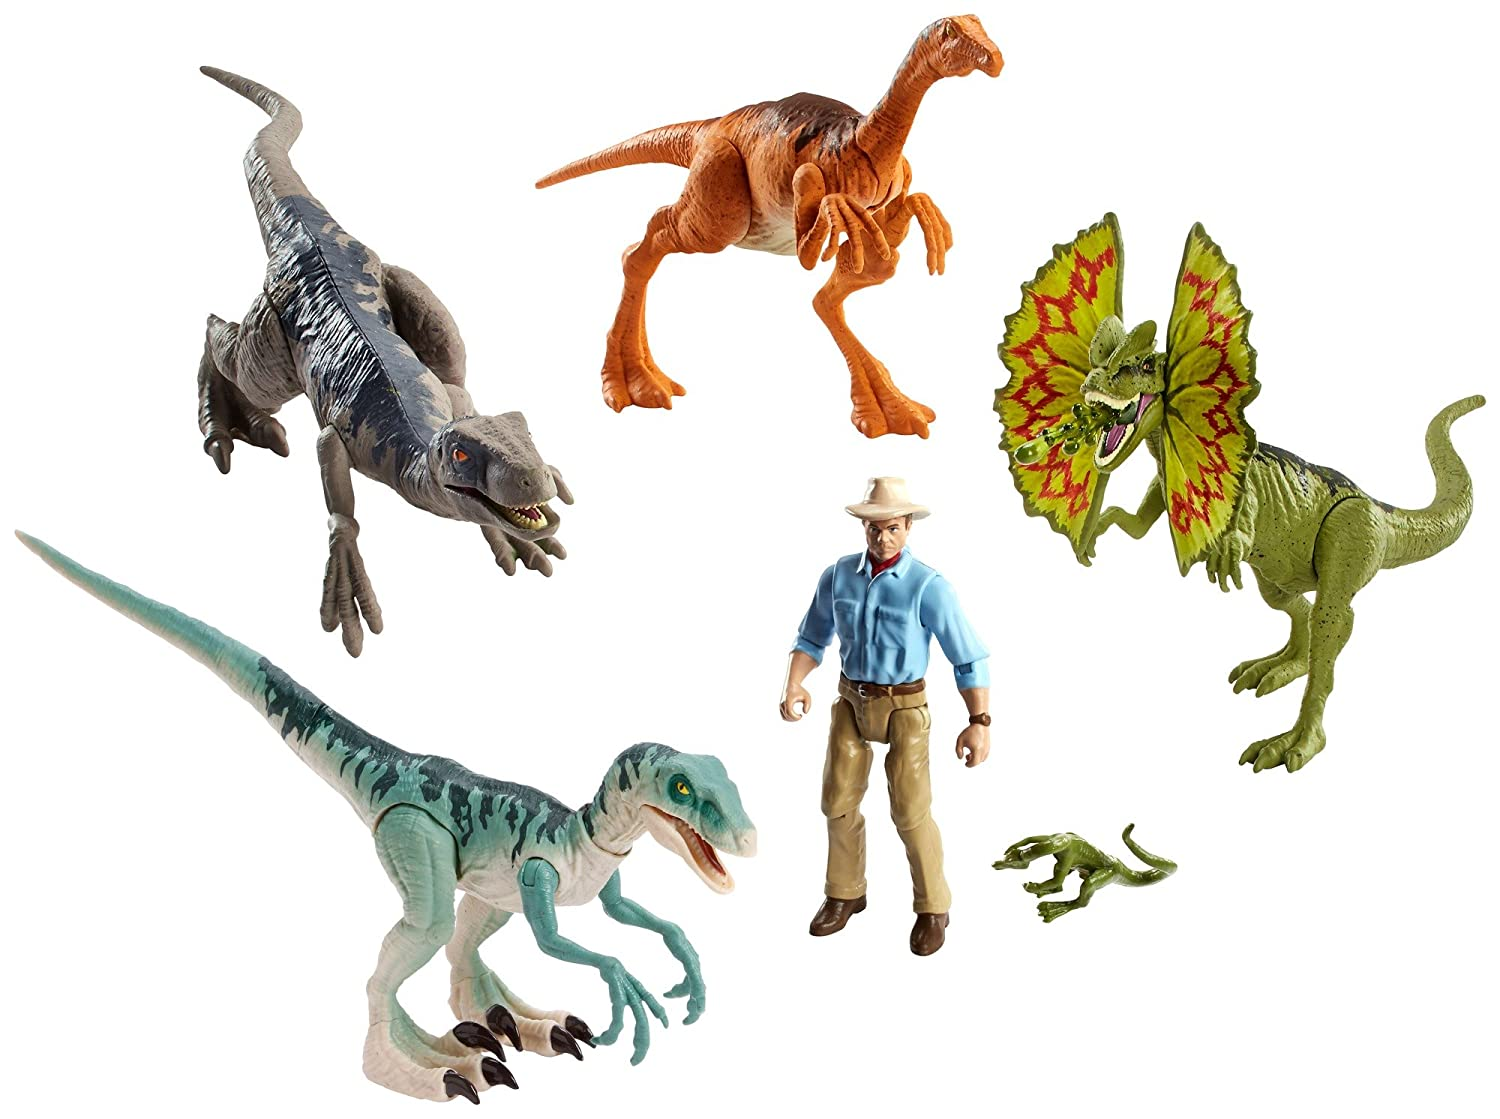 Jurassic World Details About Legacy Collection Dinosaur 6 Pack with Alan Grant Jurassic Park